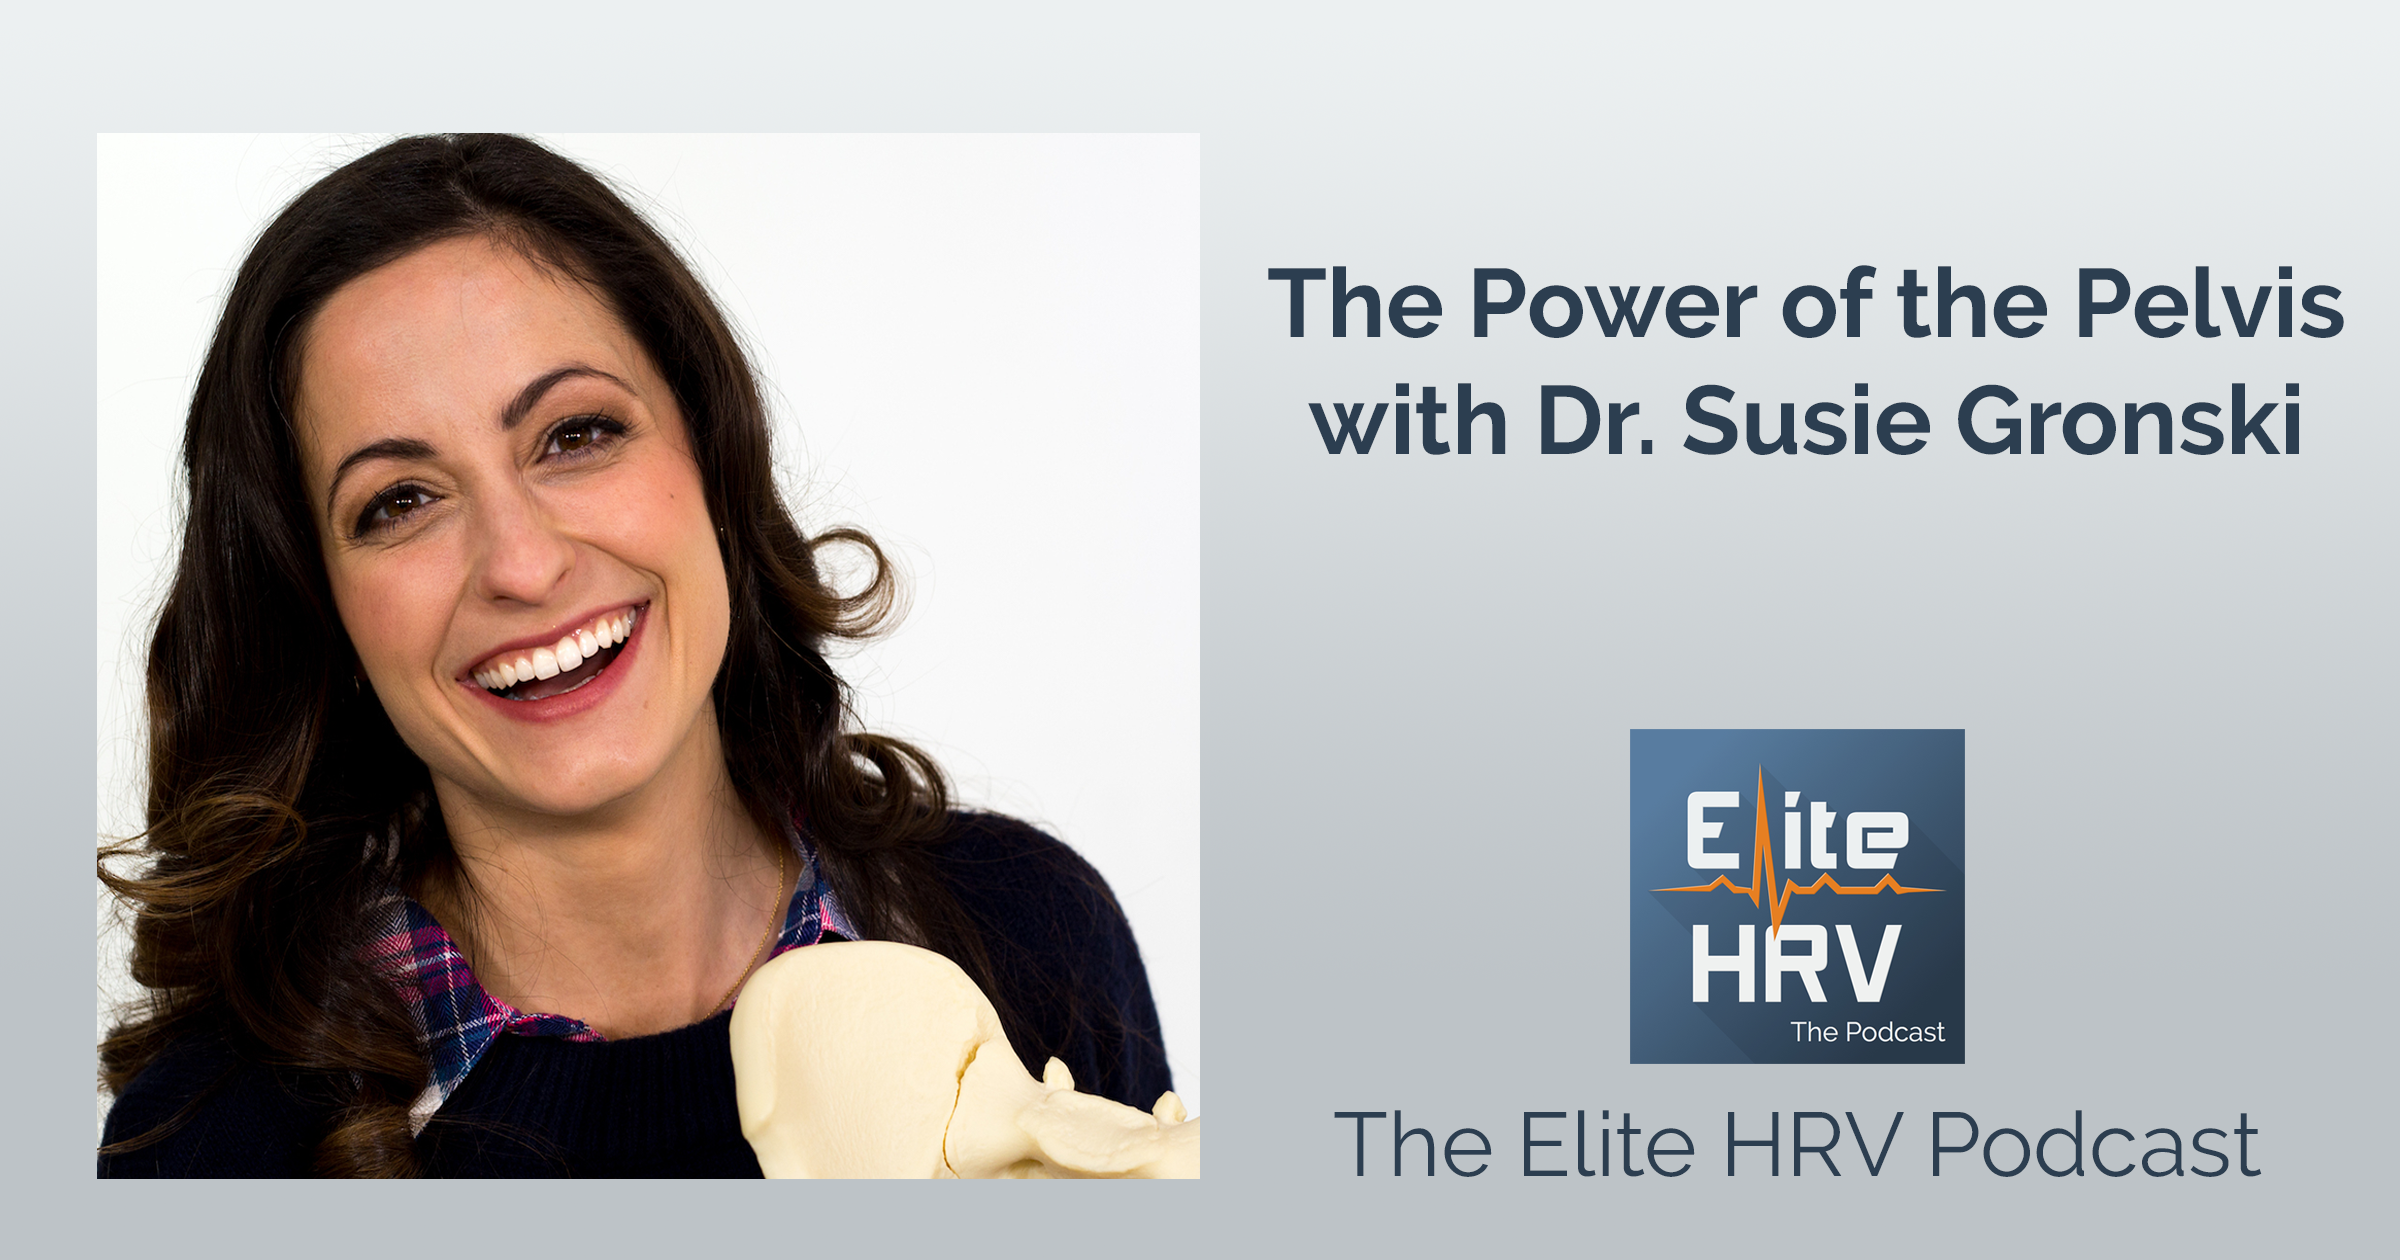 The Power of the Pelvis with Dr. Susie Gronksi